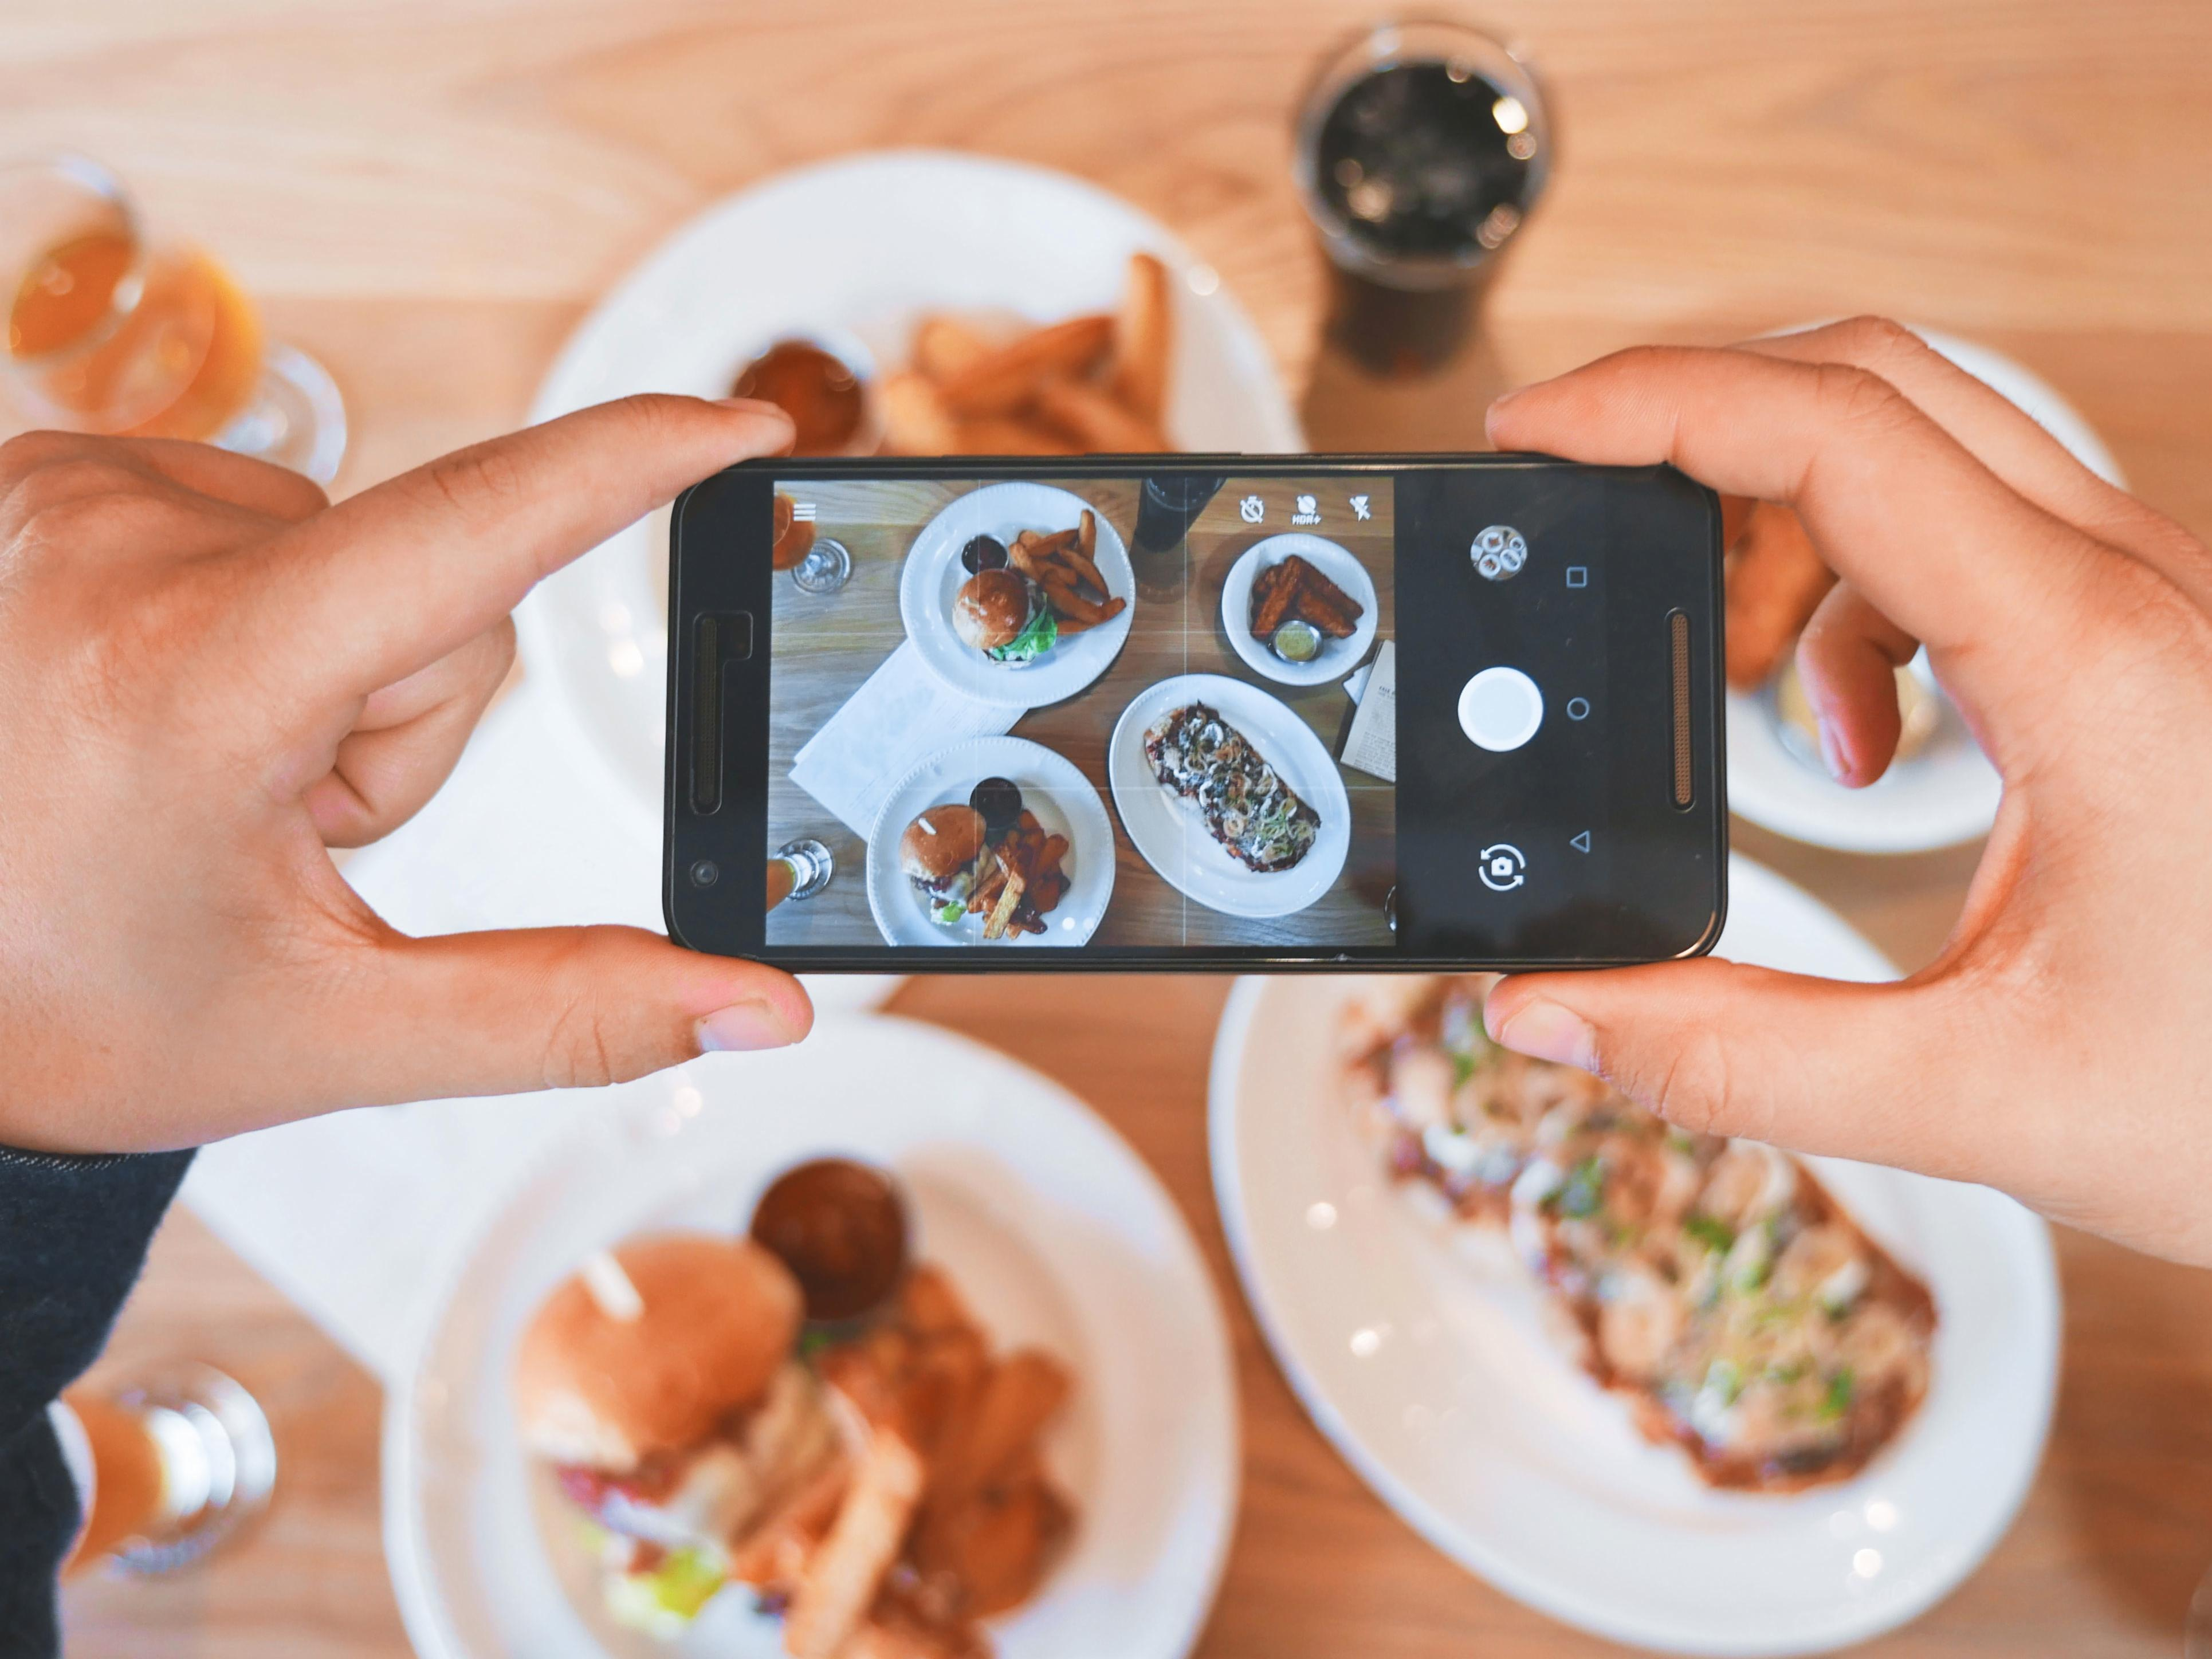 Person taking photo of breakfast with phone showing Instagram's newest feature